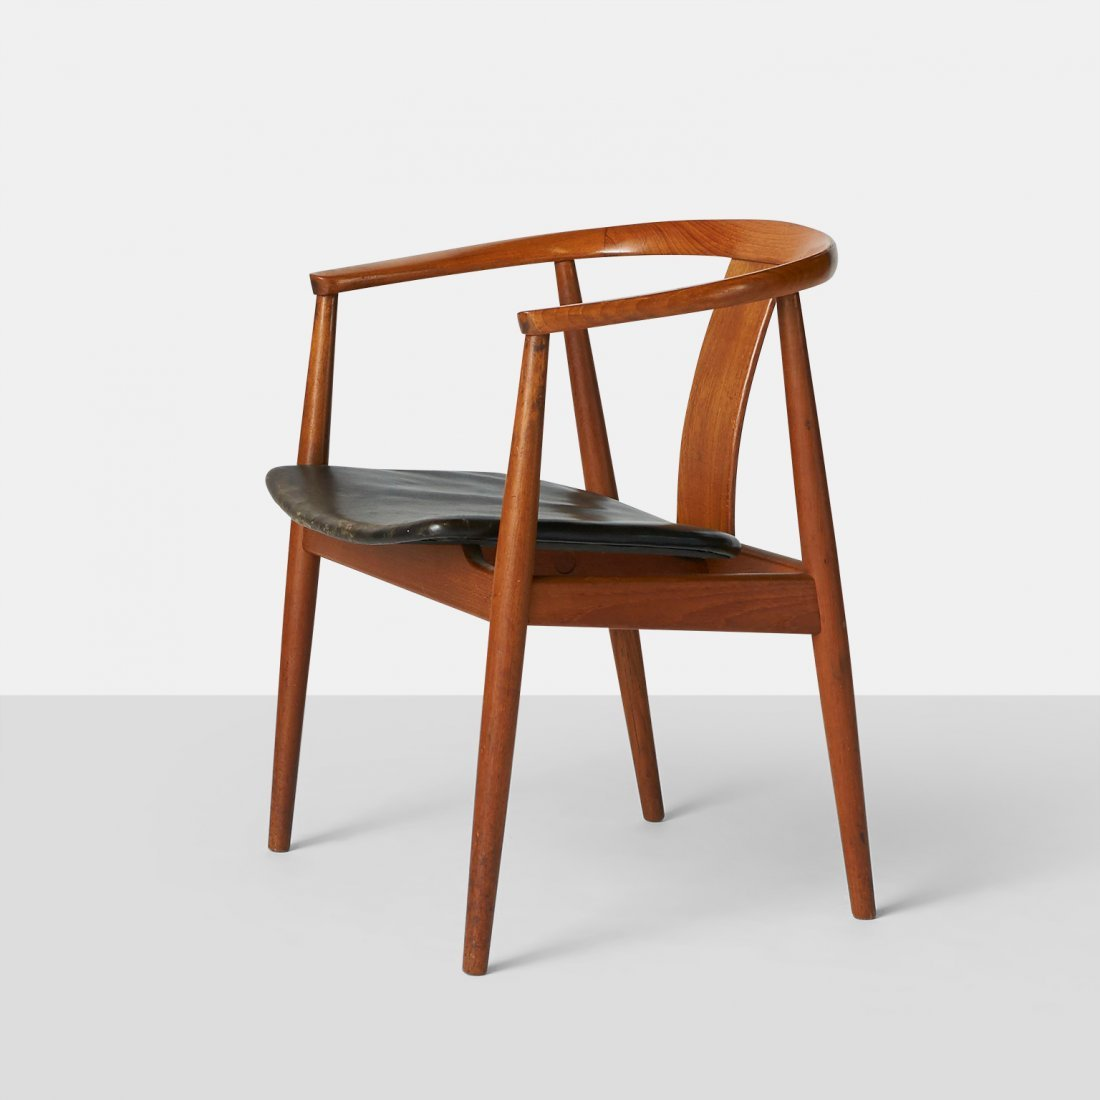 Tove & Edvard Kindt-Larsen, Lounge Chair